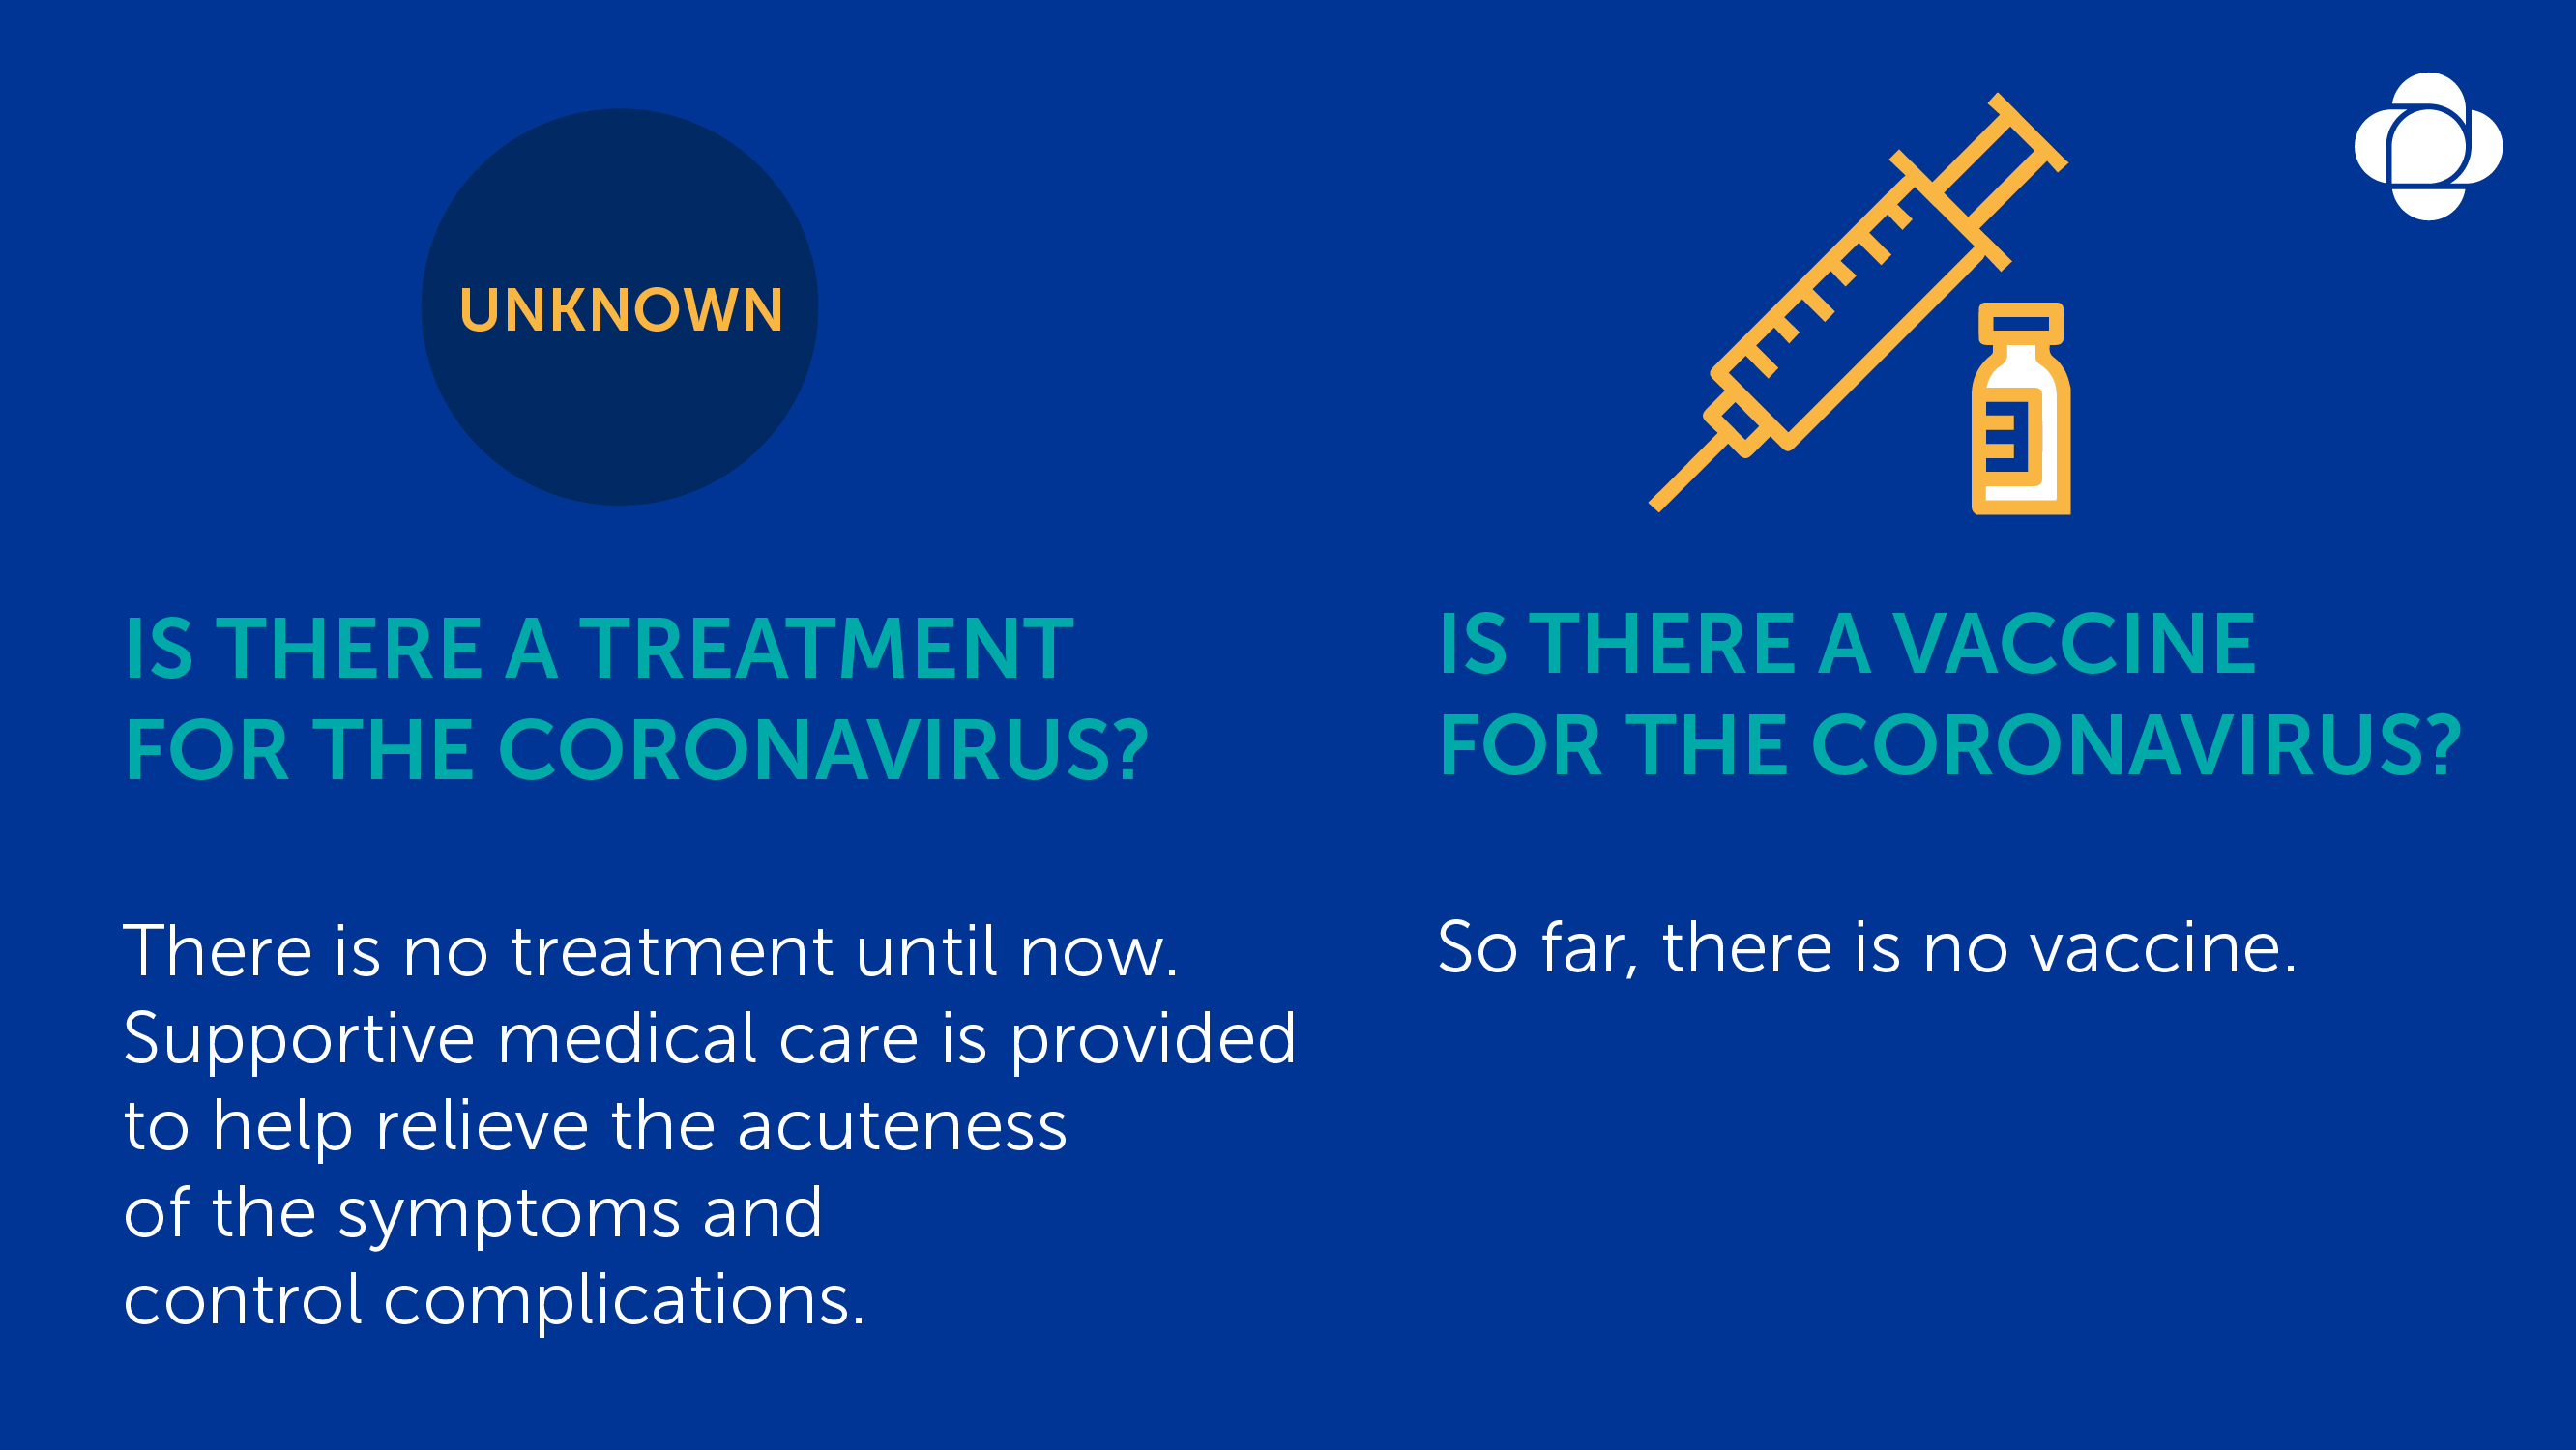 CORONAVIRUS PRECAUTIONARY MEASURES